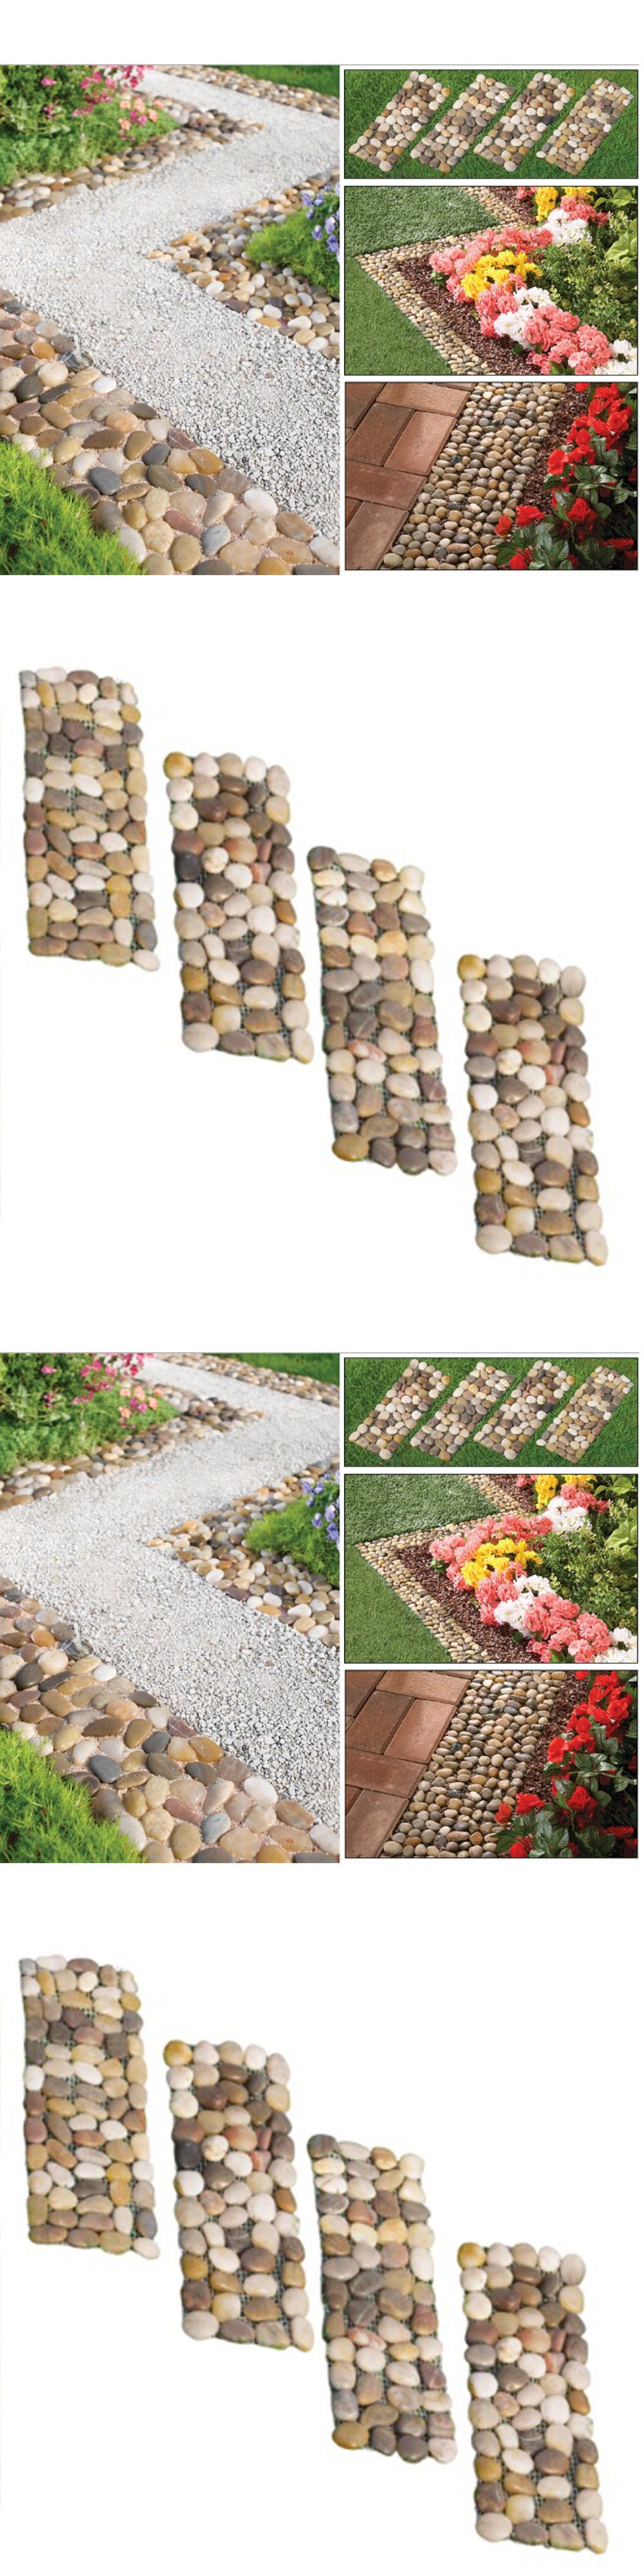 Decorative stone for outdoor decoration